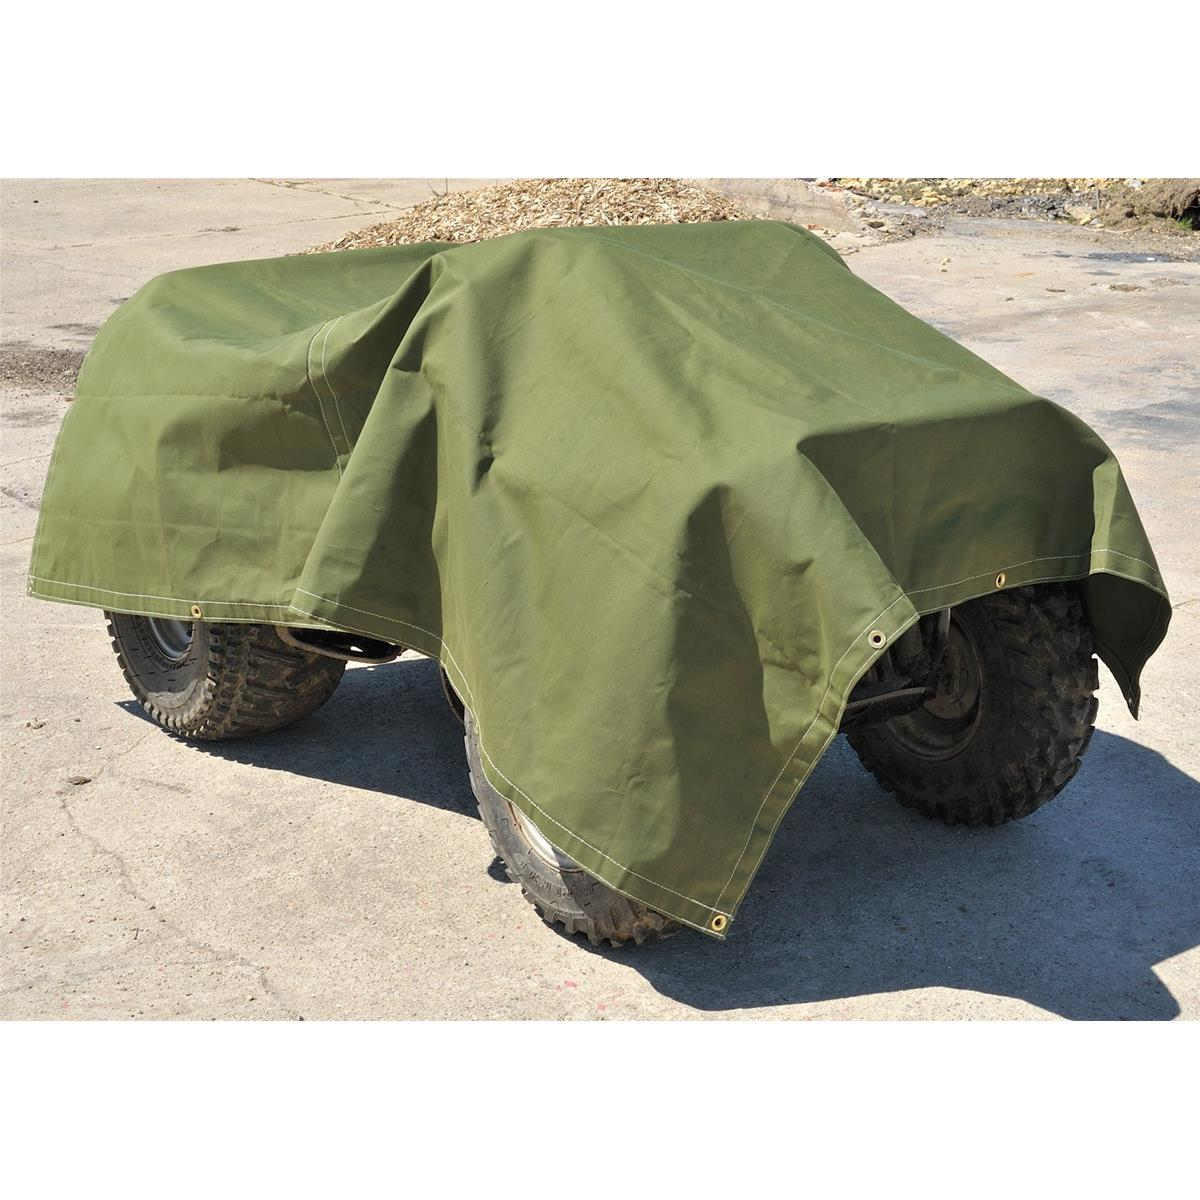 GEMPLER'S 14.5-oz. WEATHER TOUGH™ Tarp